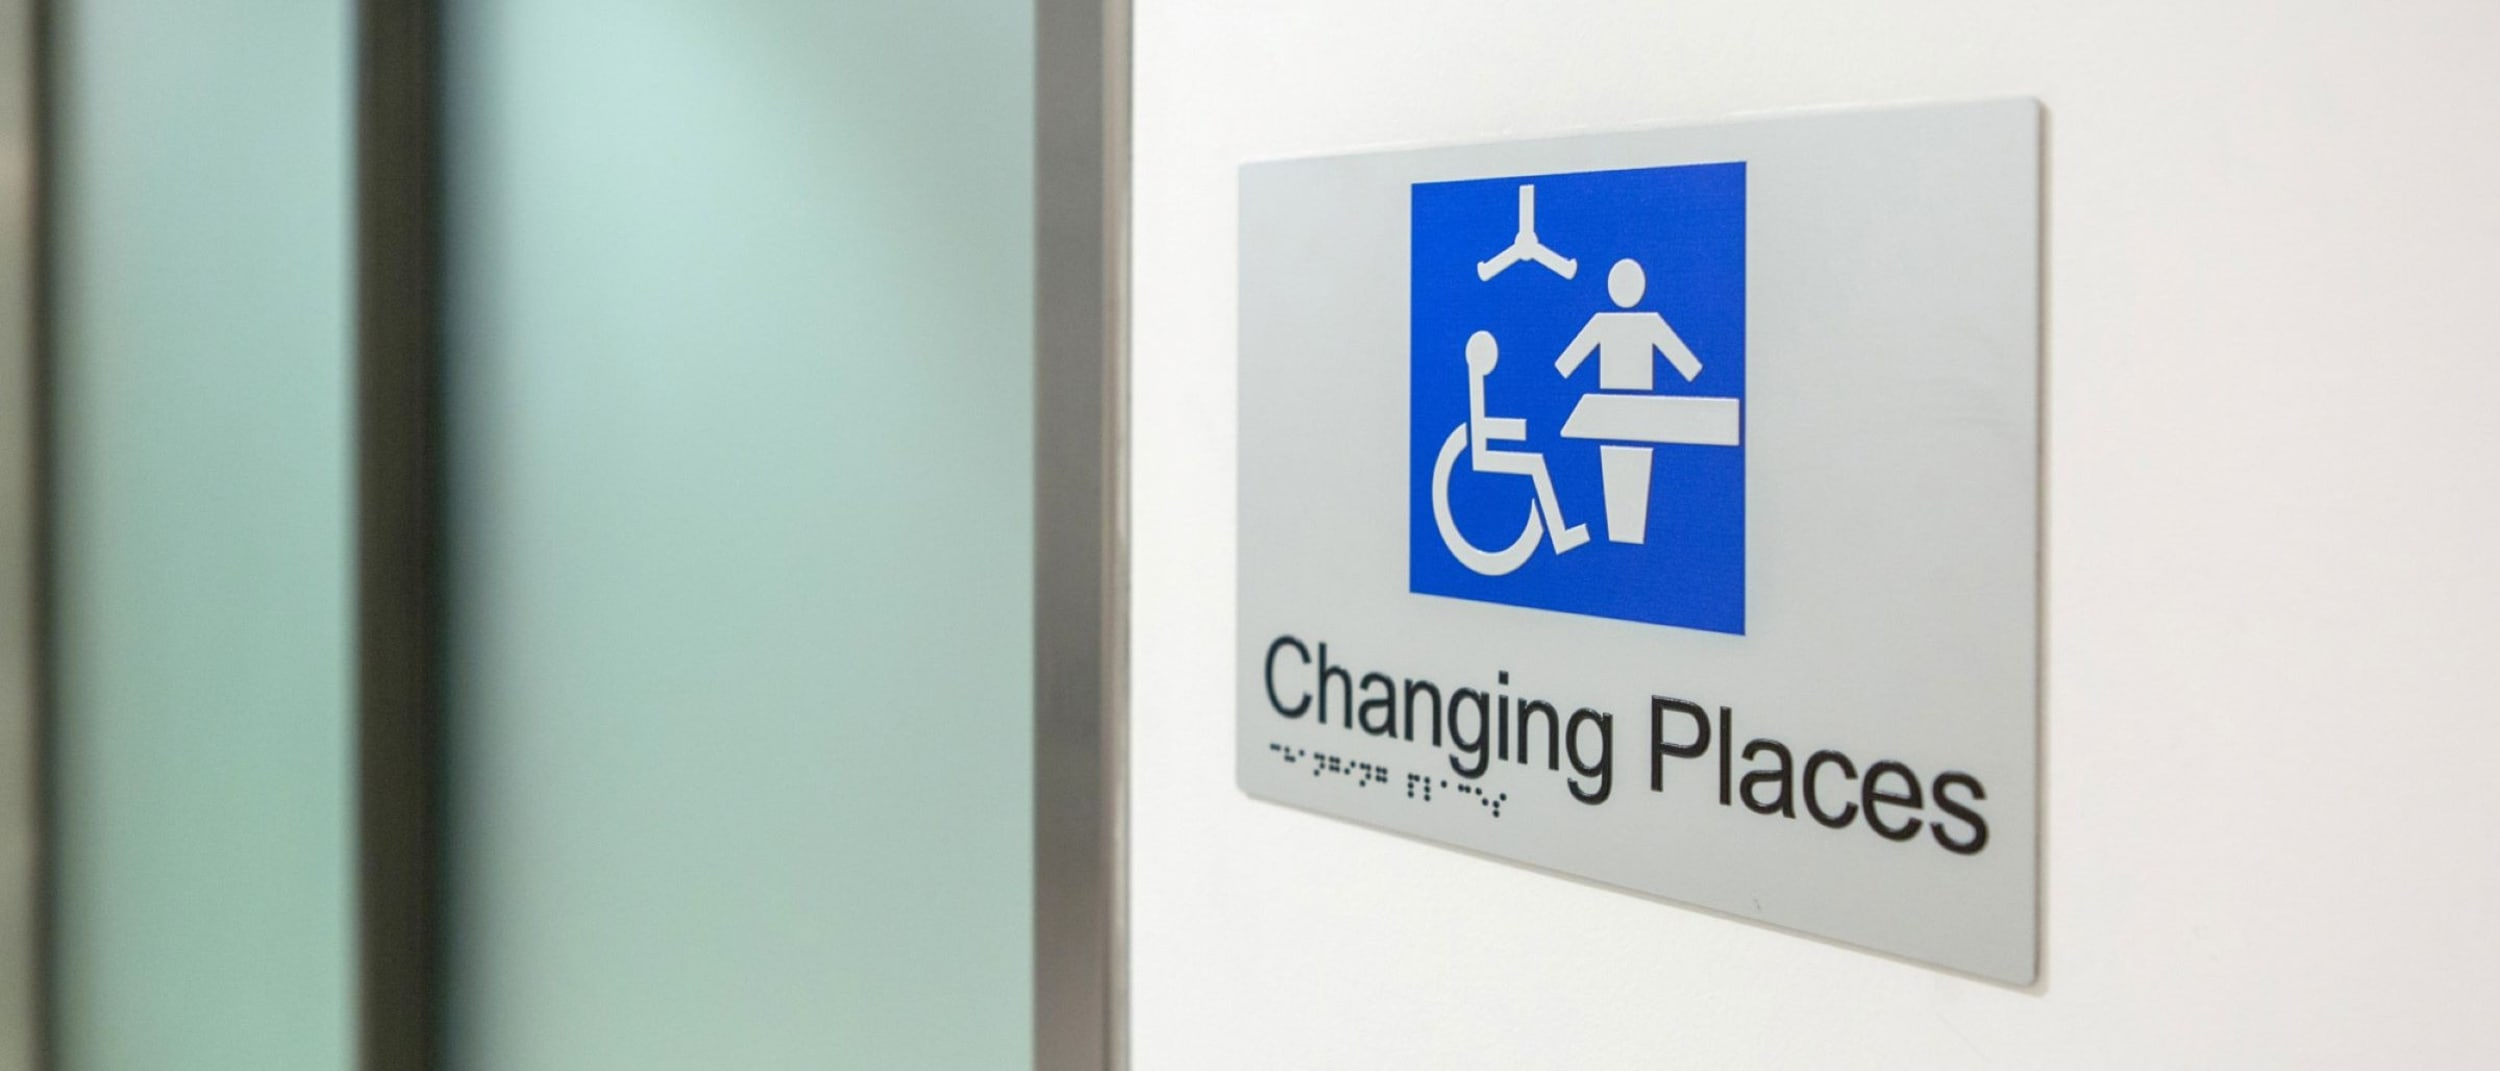 Changing Places now open